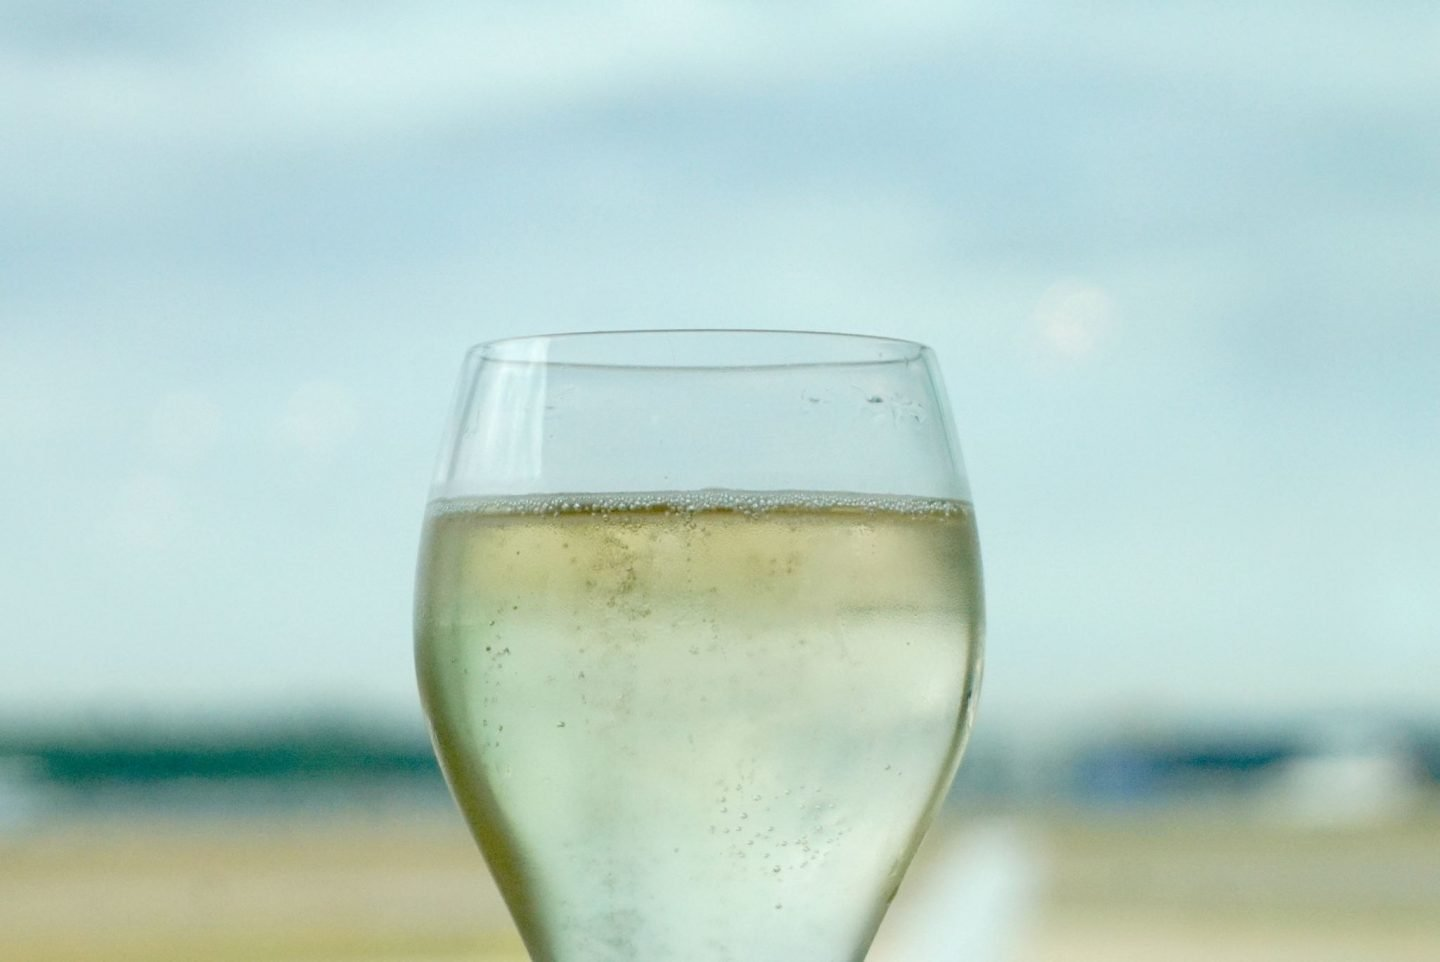 Gatwick Airport Paking And Lounge Review Trusted Travel